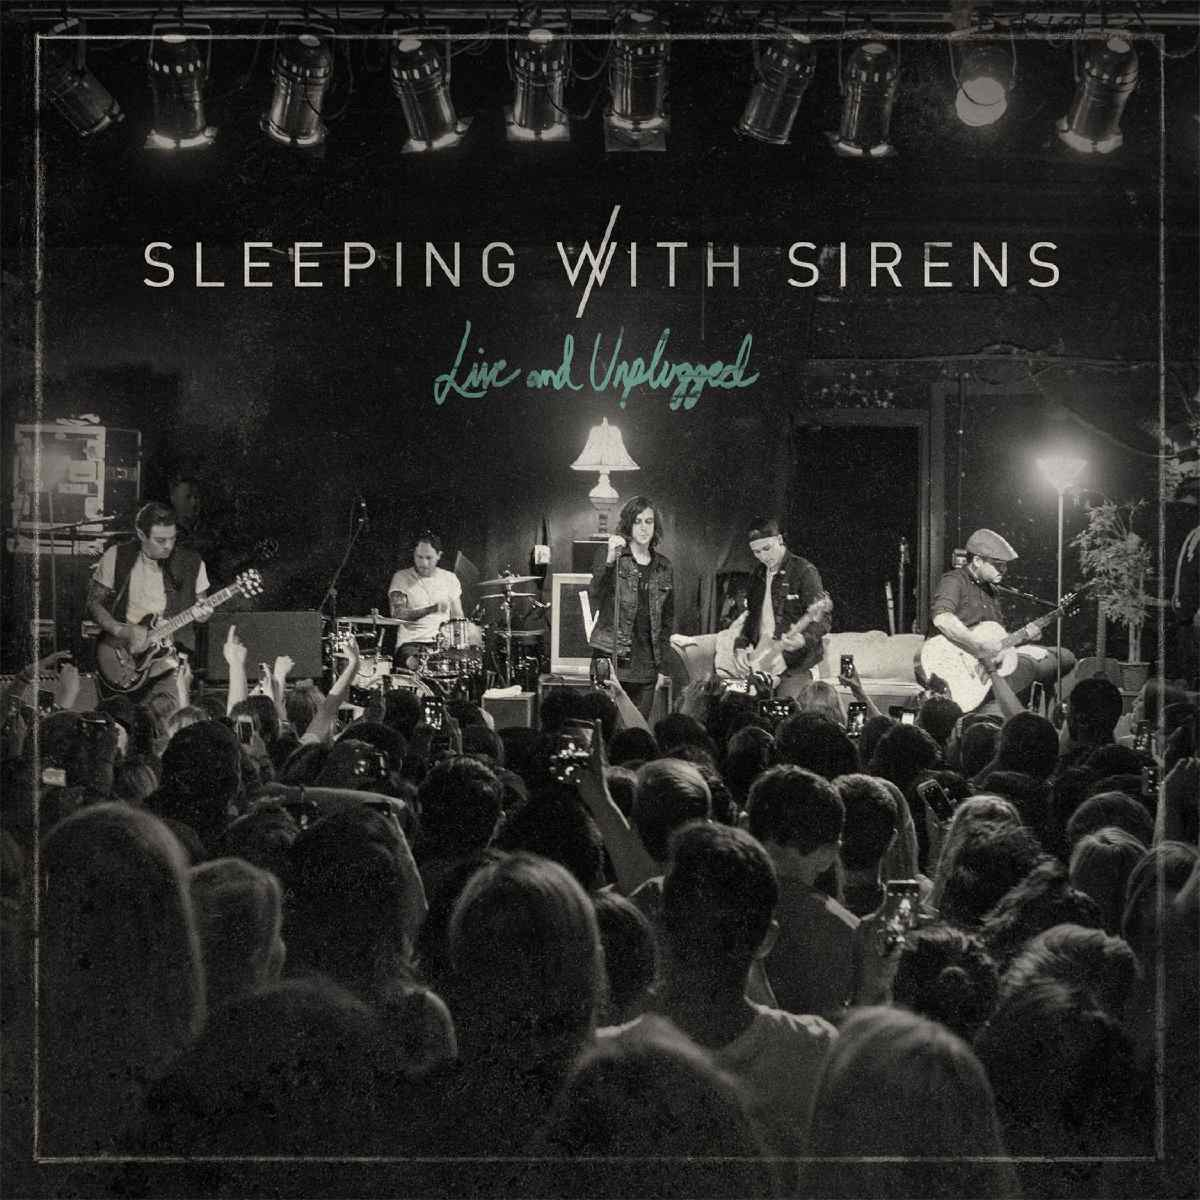 Sleeping with sirens with ears to see and eyes to hear album